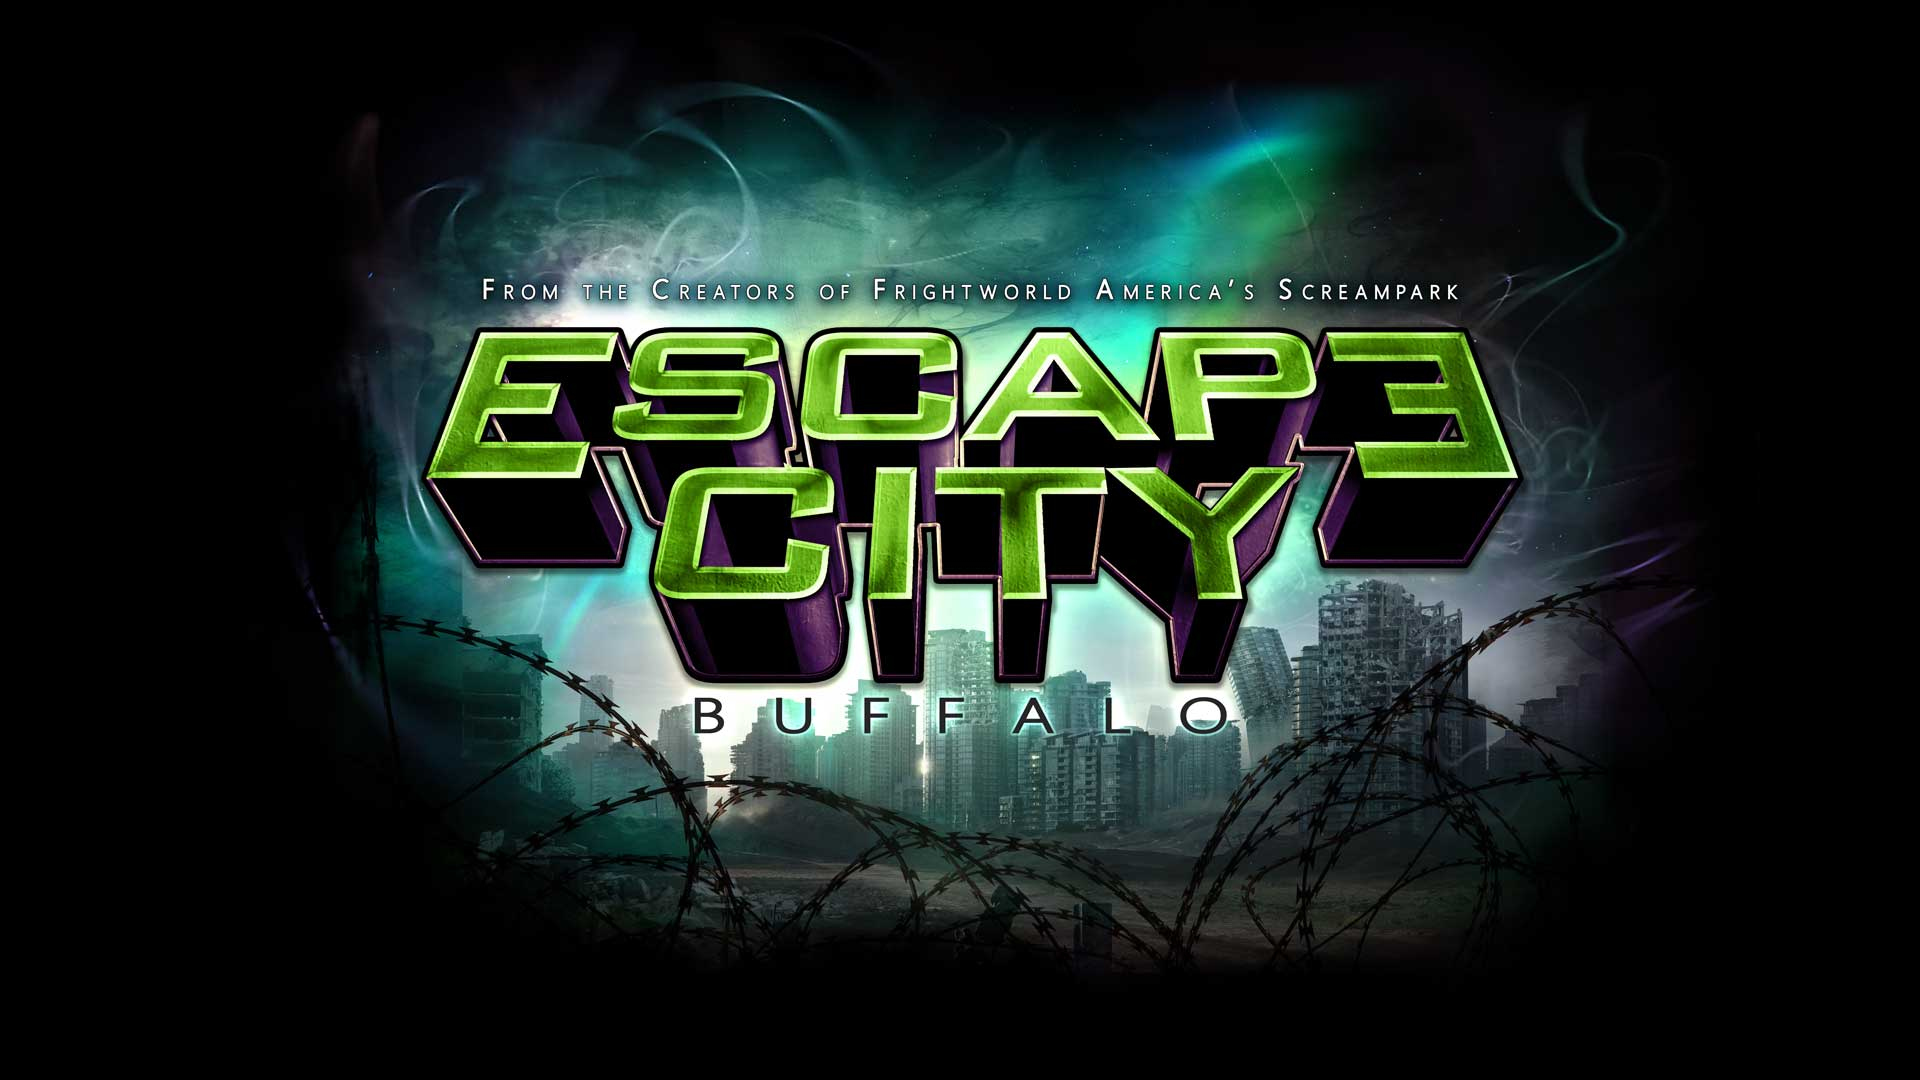 escape city buffalo | buffalo's best escape rooms!escape city buffalo